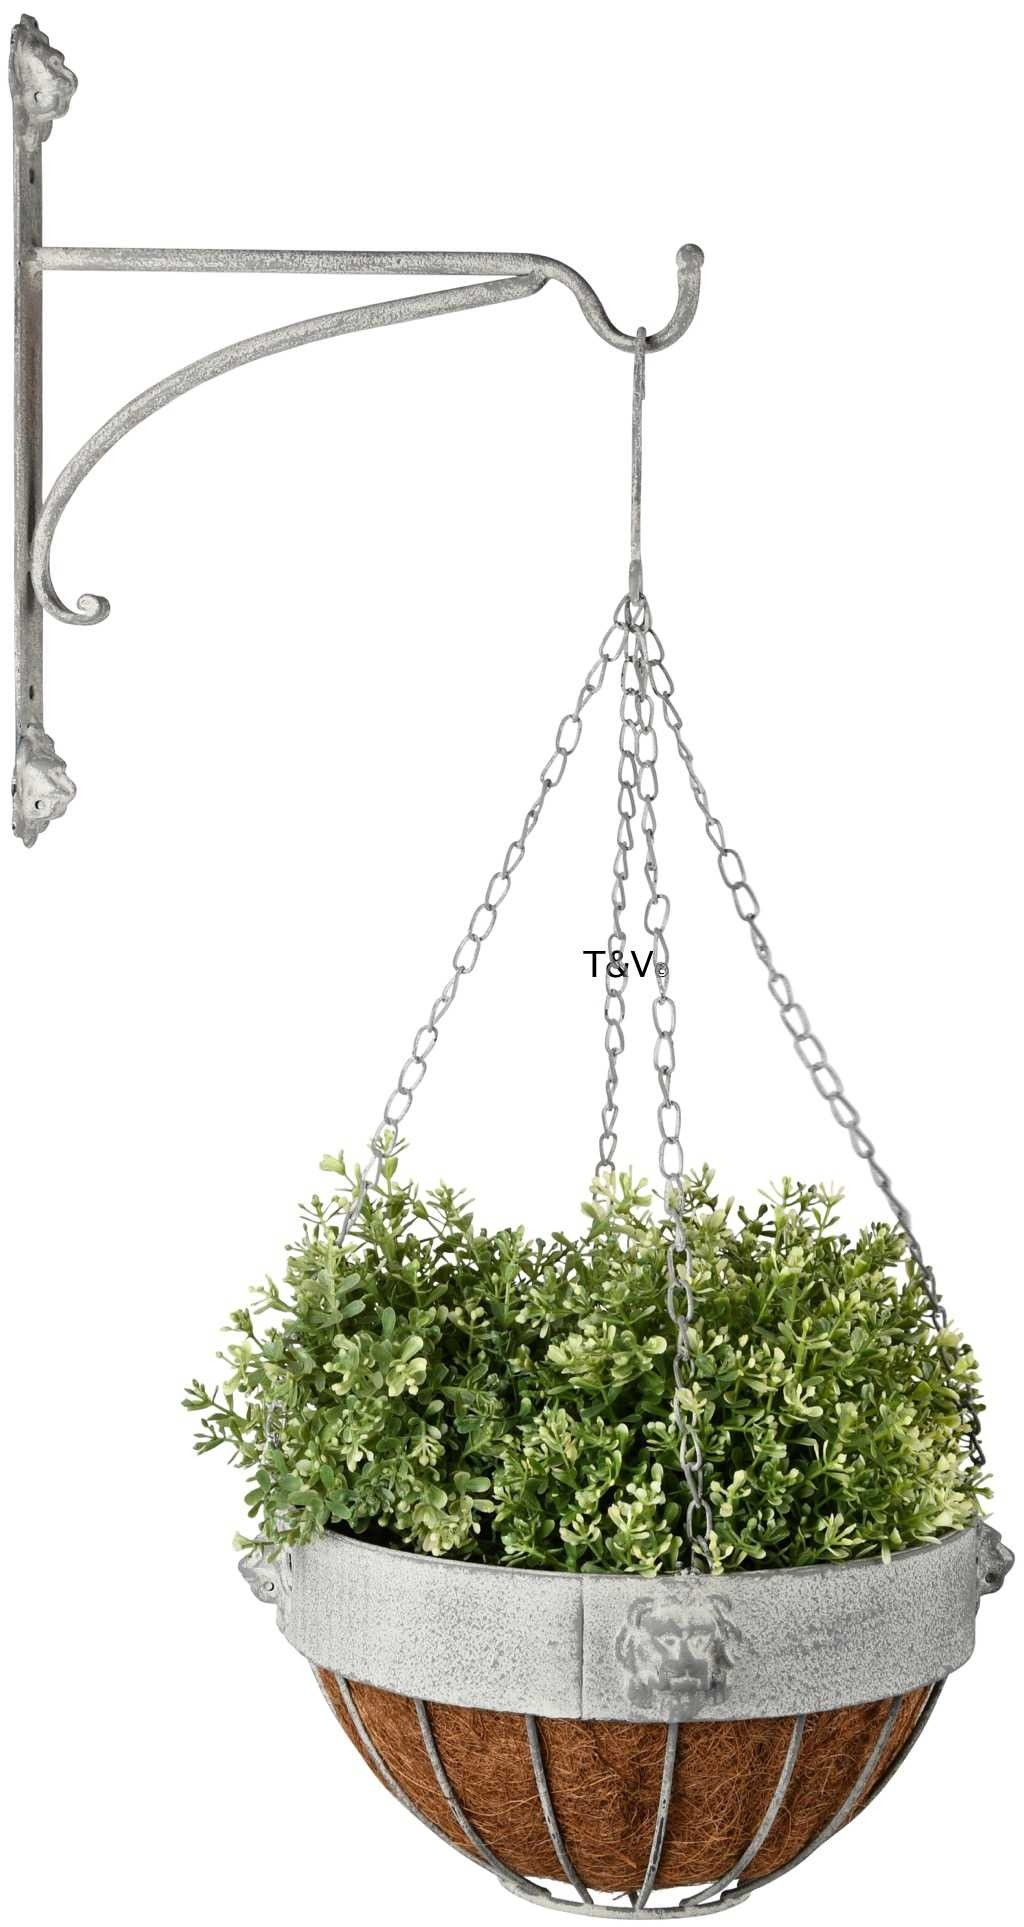 Esschert Design AM leeuw hanging basket haak (AM111 - 8714982141461) | Trends & Vision